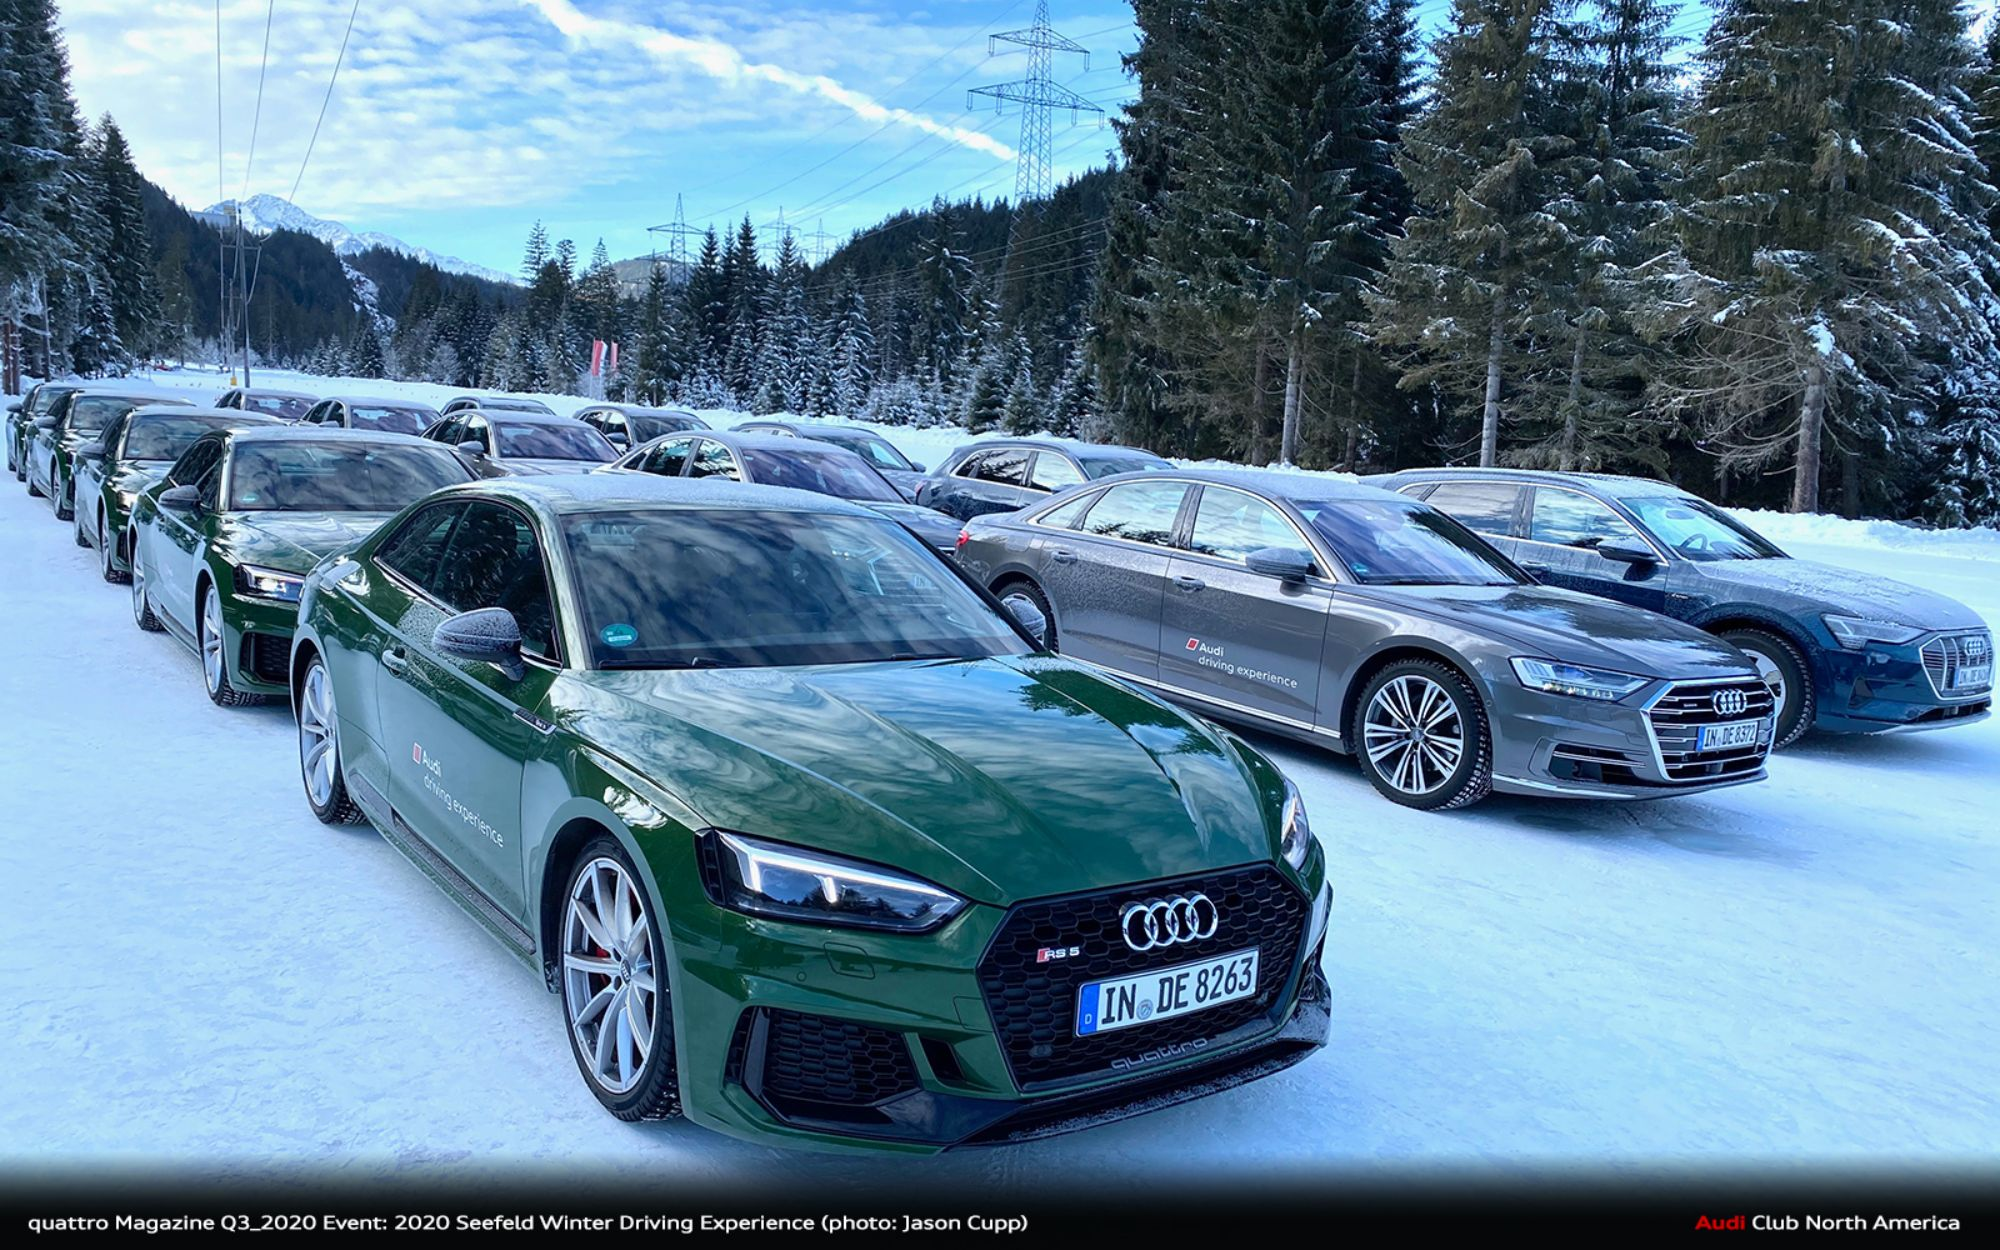 quattro Magazine Q2_2020 Event Report: 2020 Seefeld Winter Driving Experience